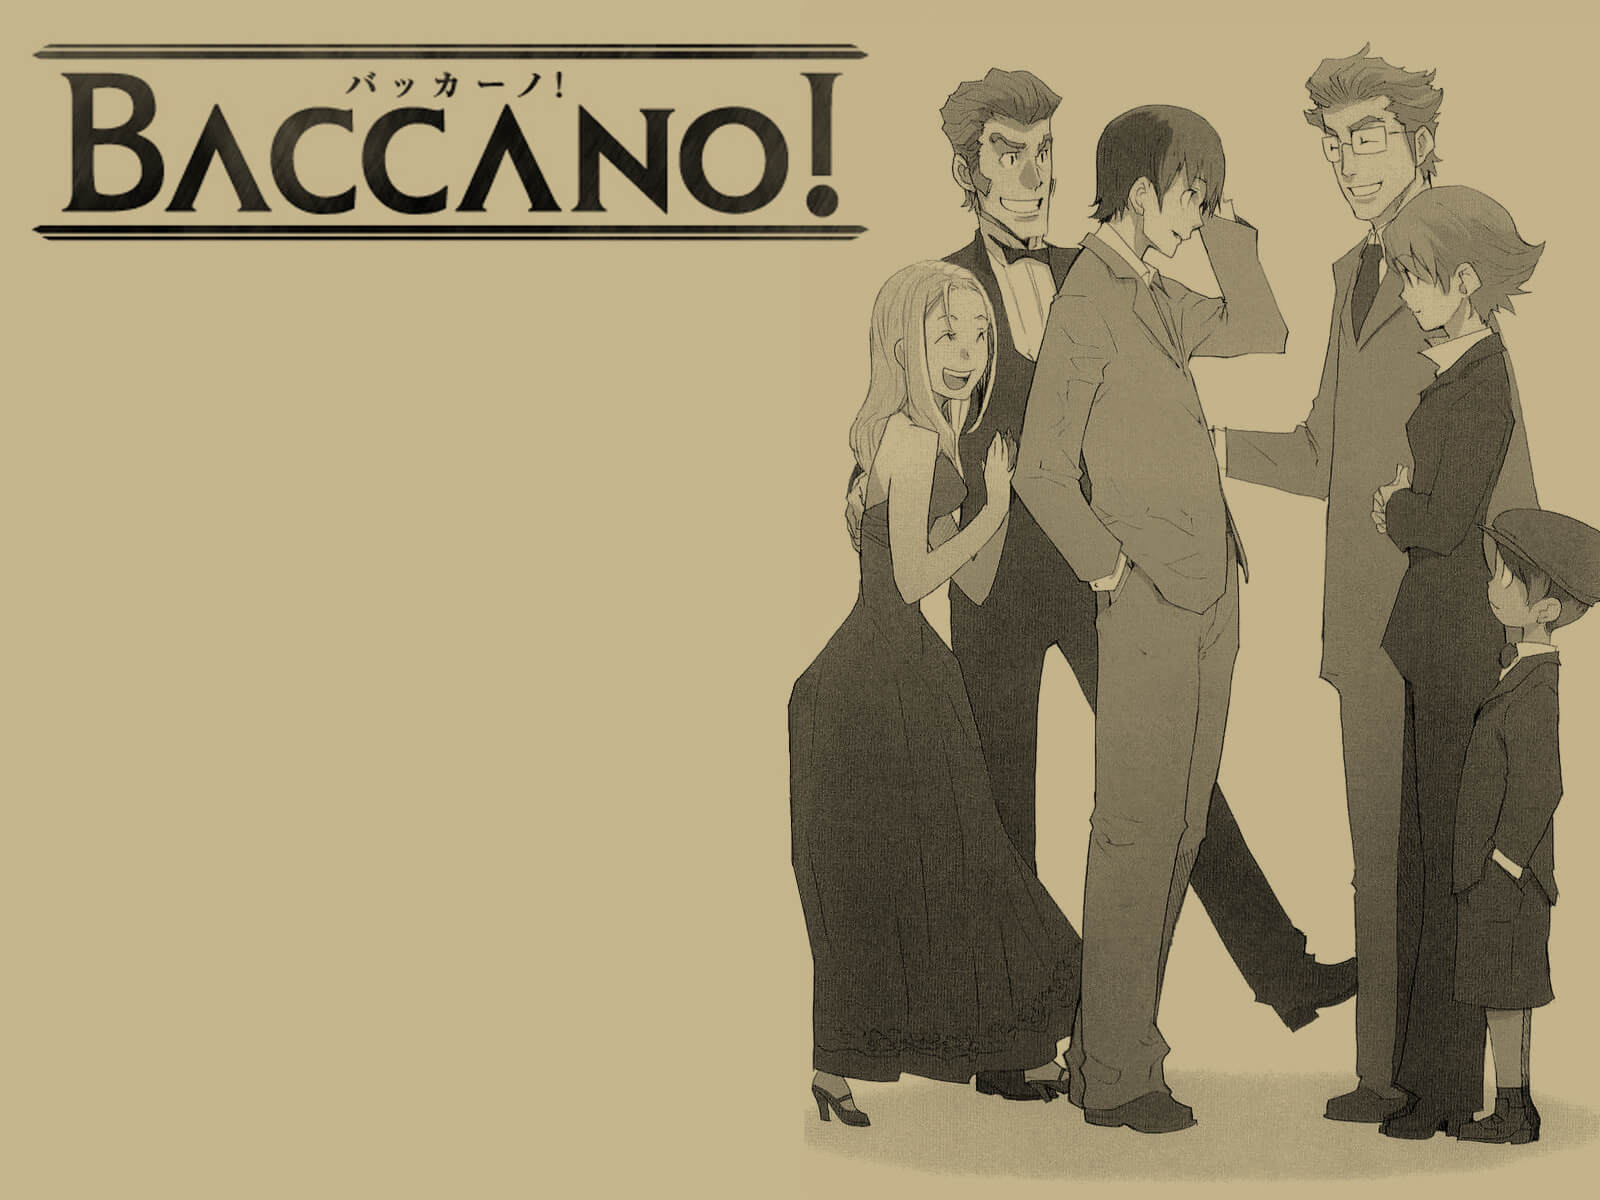 Baccano! [BD] Sub Indo : Episode 1-13 END